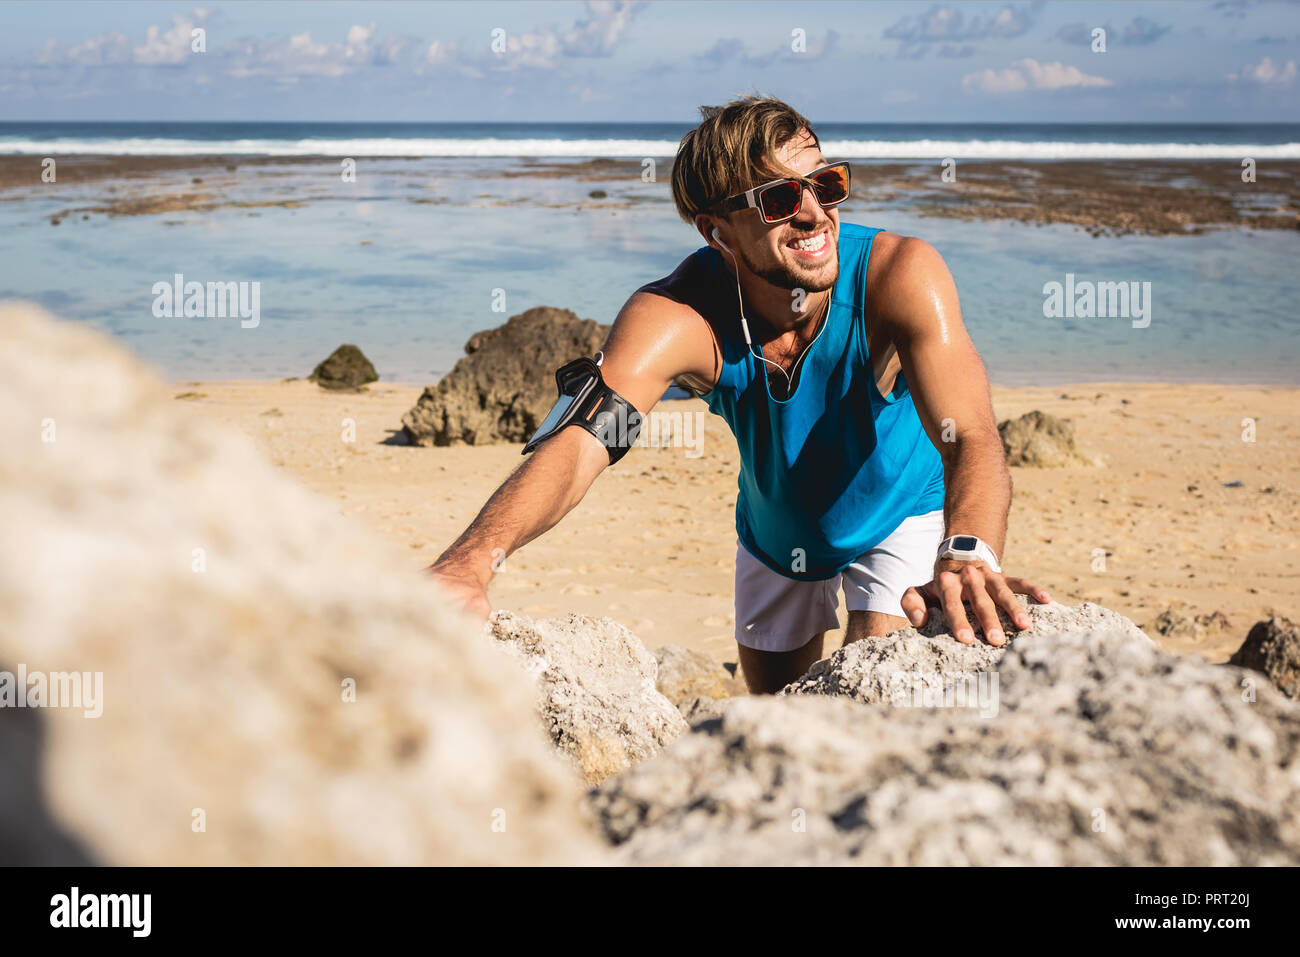 smiling sportsman climbing on rocks on beach, Bali, Indonesia - Stock Image